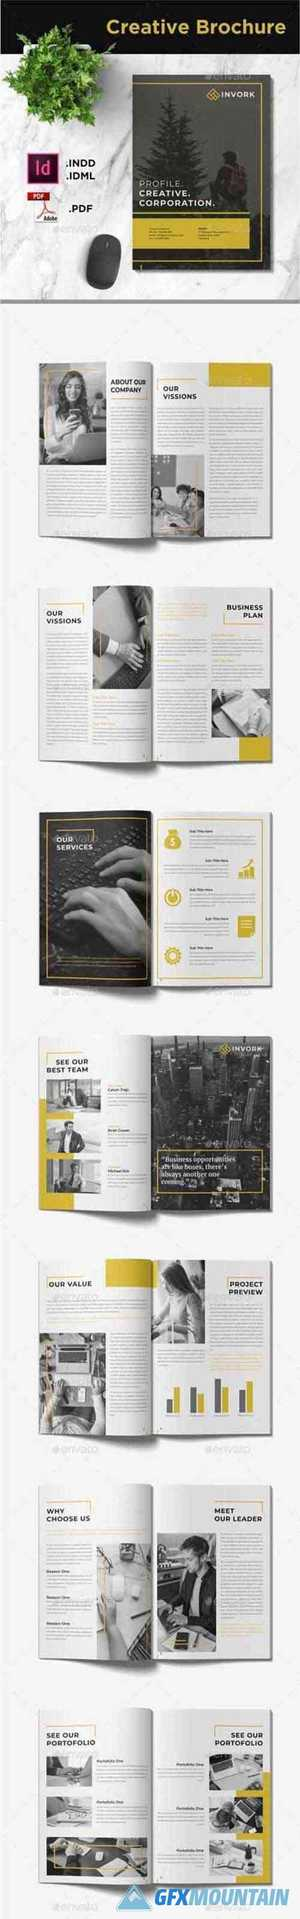 Invork - Business Brochure Template 28458511